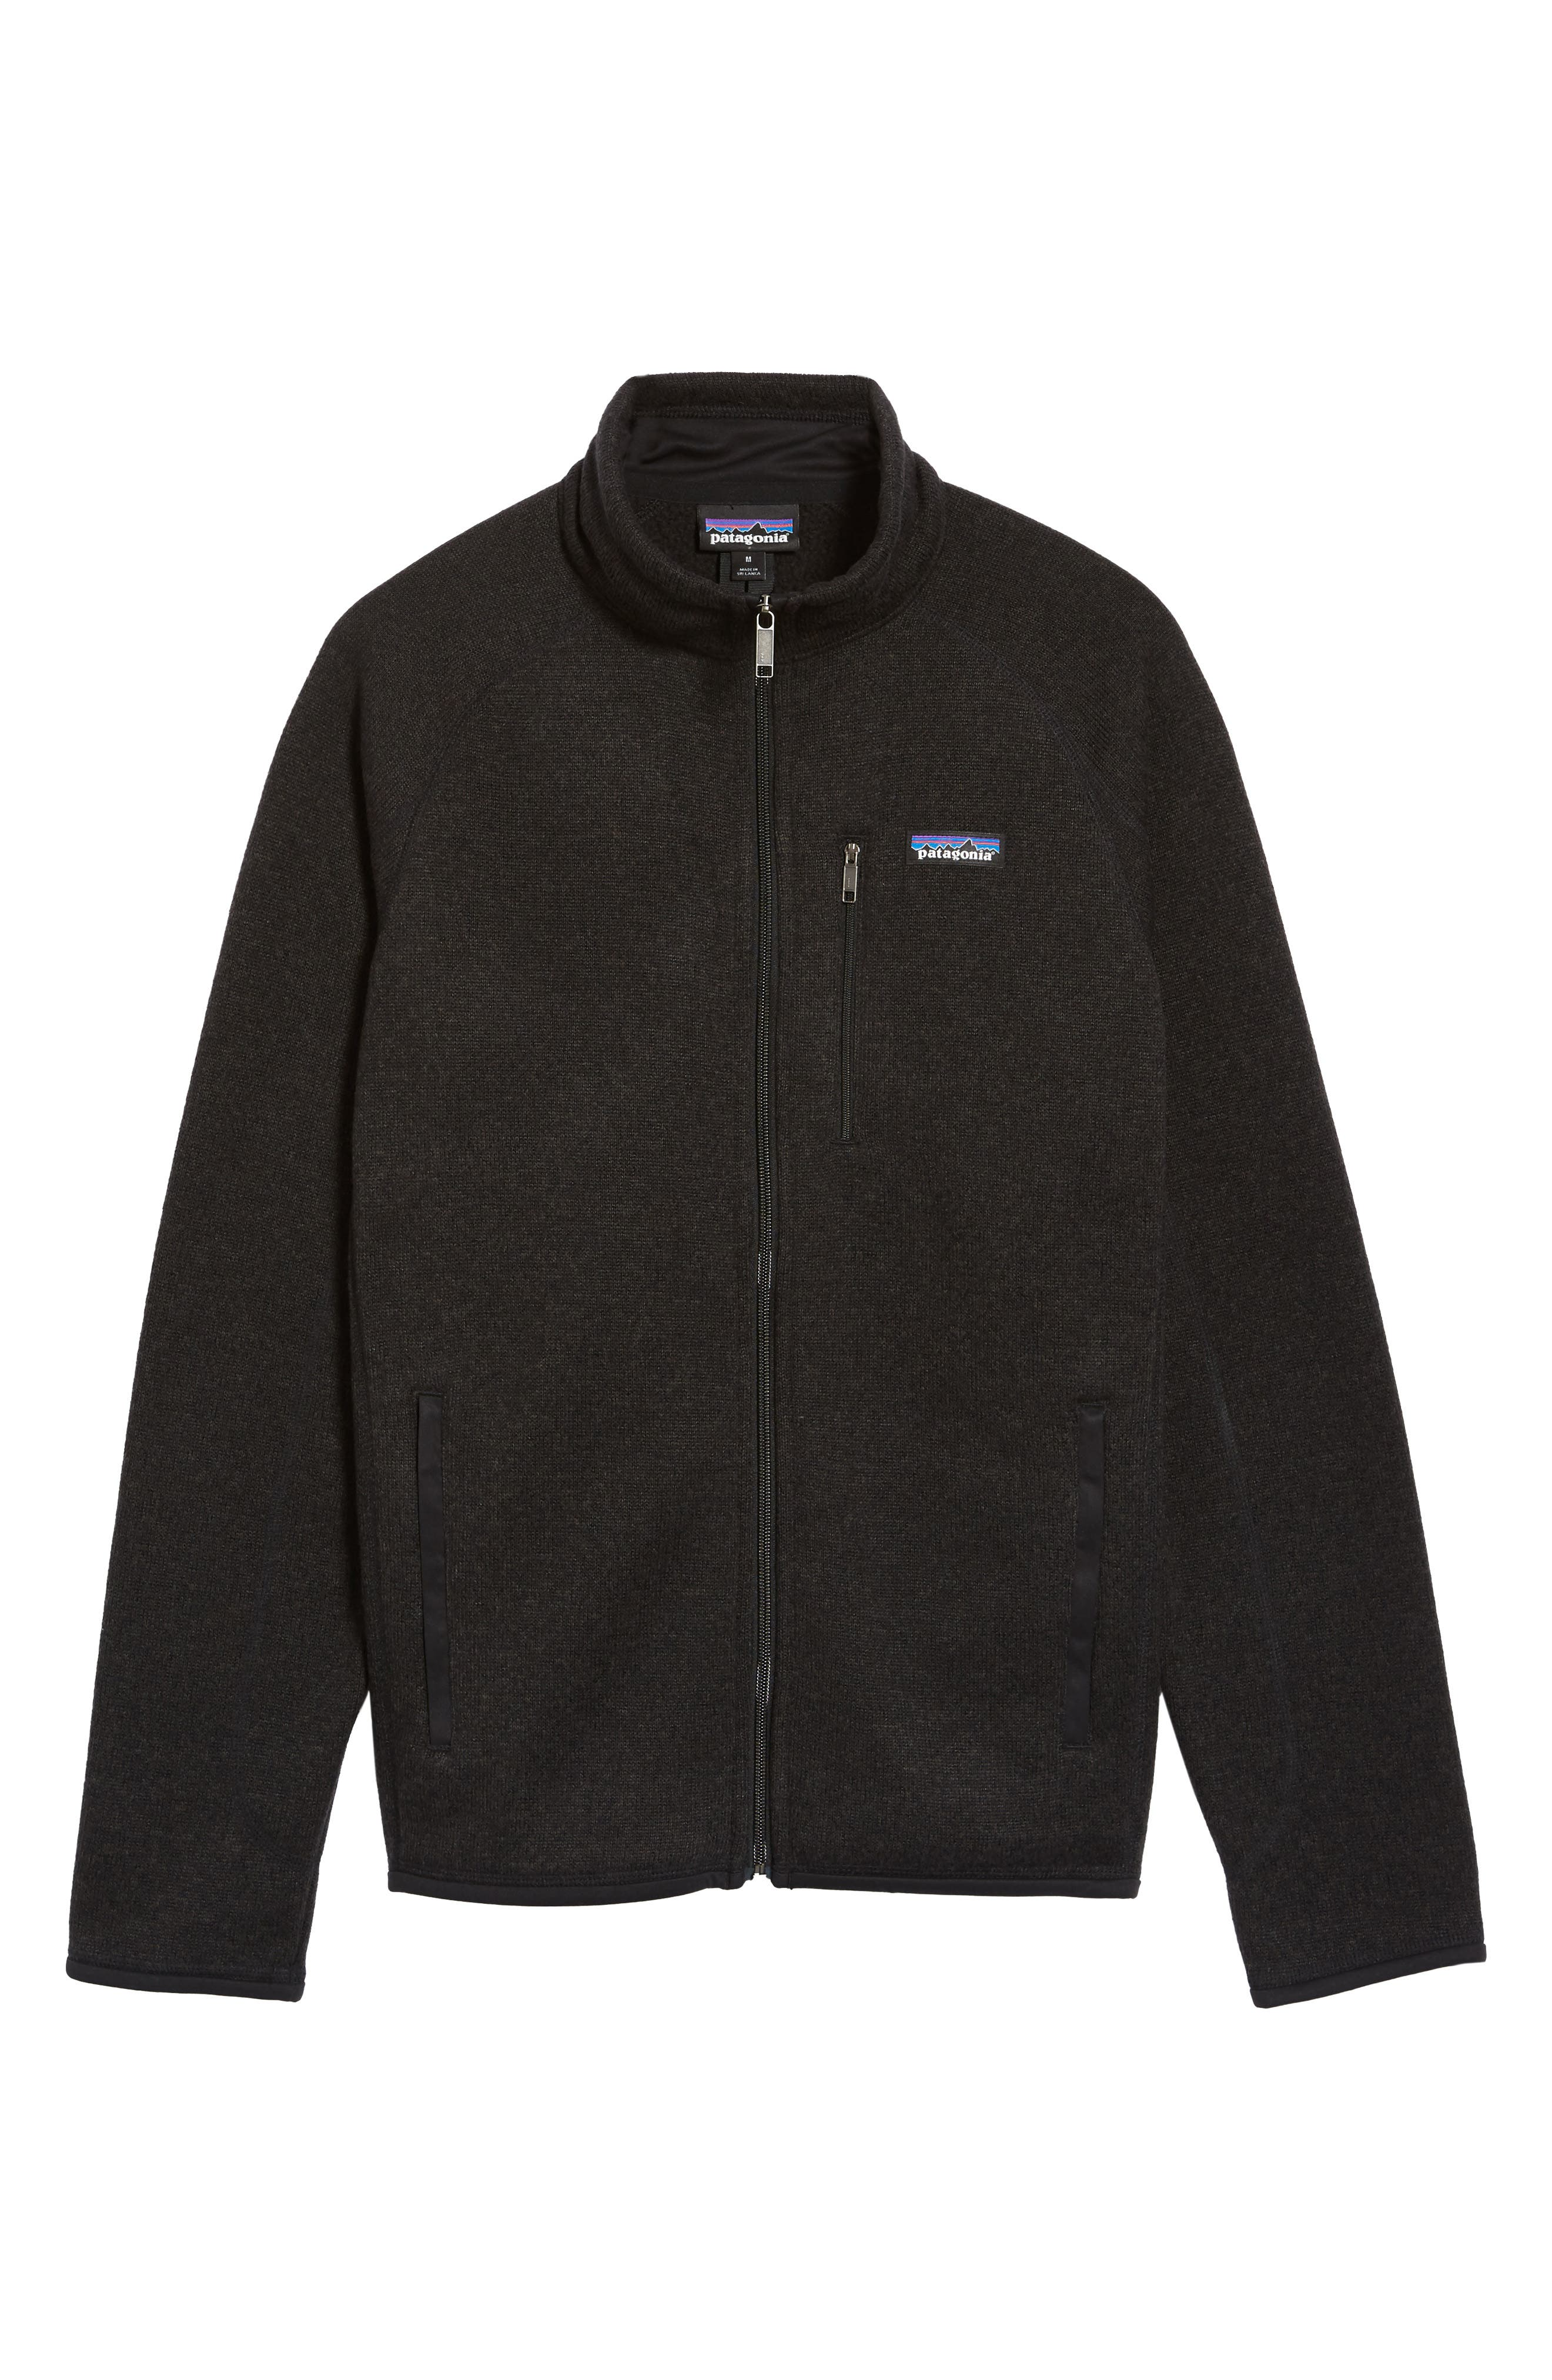 PATAGONIA, Better Sweater Zip Front Jacket, Alternate thumbnail 6, color, BLACK